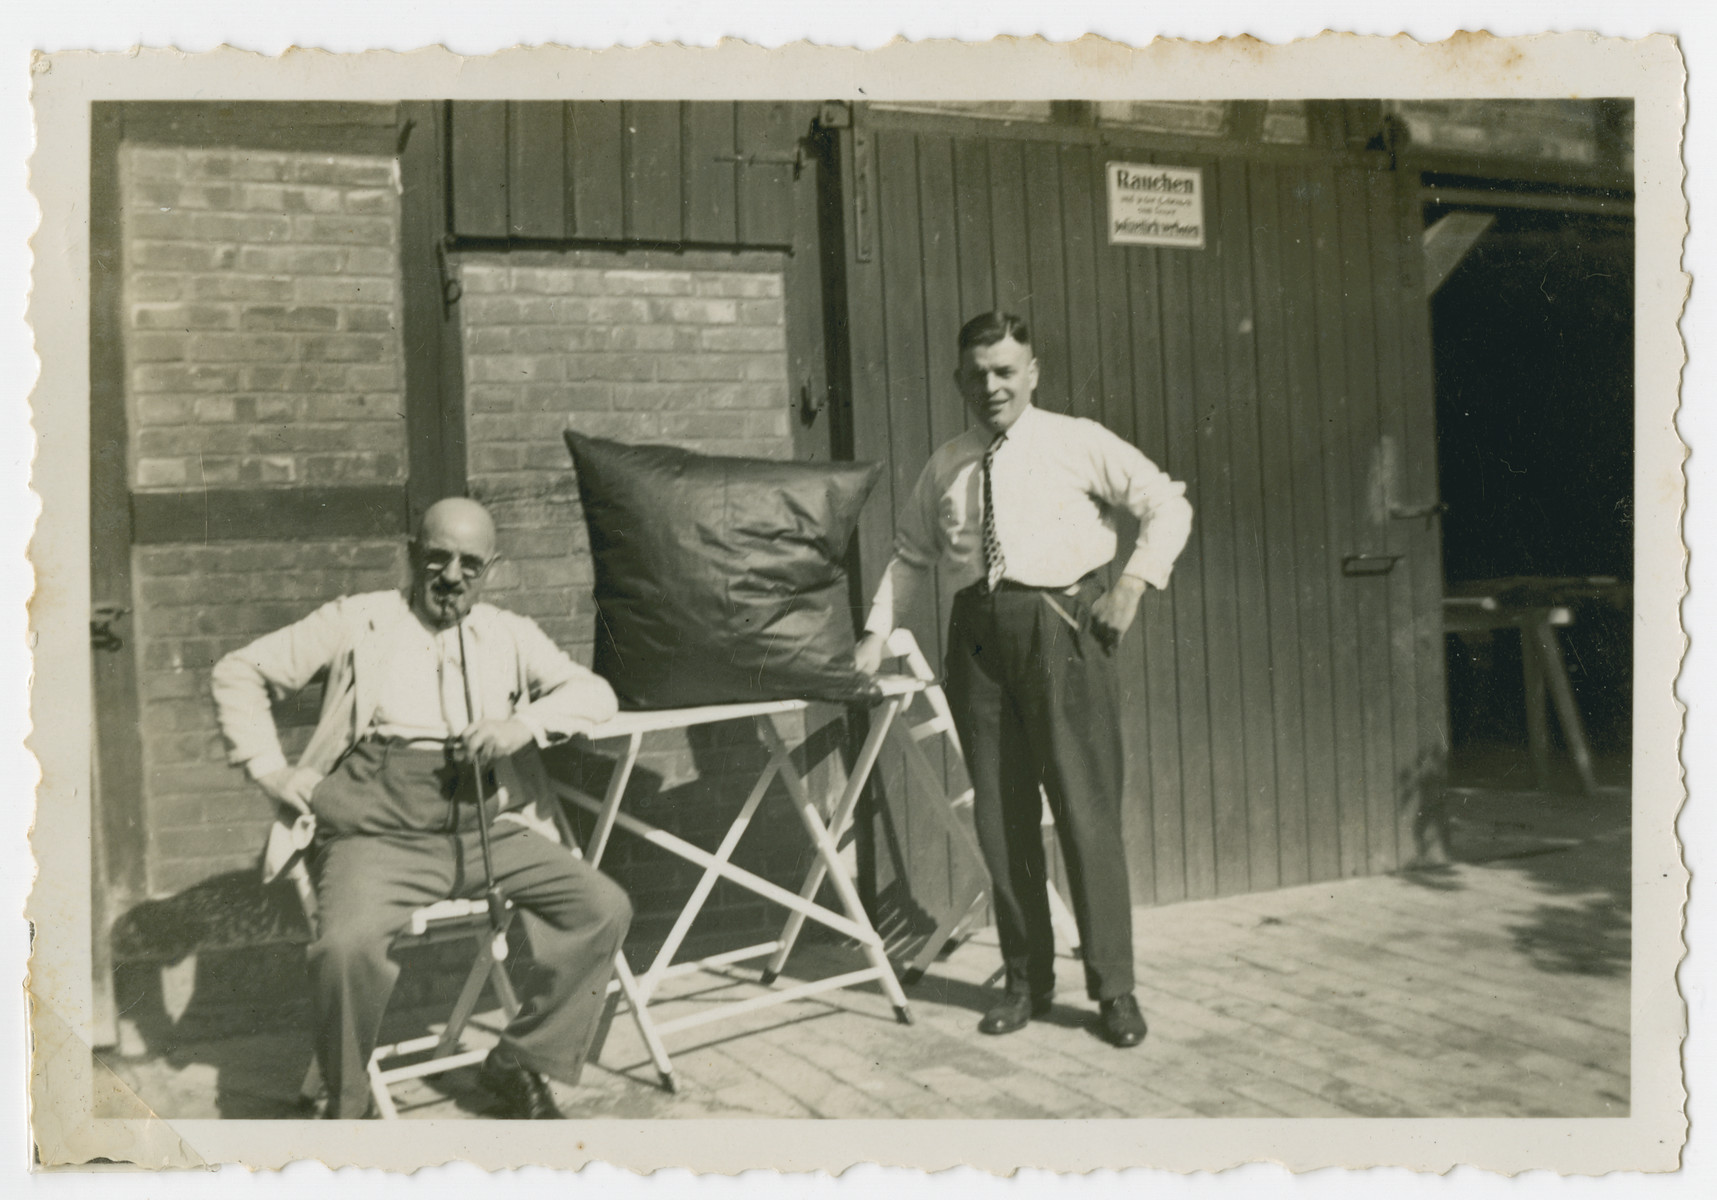 Julius Gutheim, co-owner of S. Kleeblatt,a dry-good store poses with Helene Kleeblatt's brother-in-law Louis Grueneberg.     They are in front of a former stable which was converted into a laundry for feather bedding.